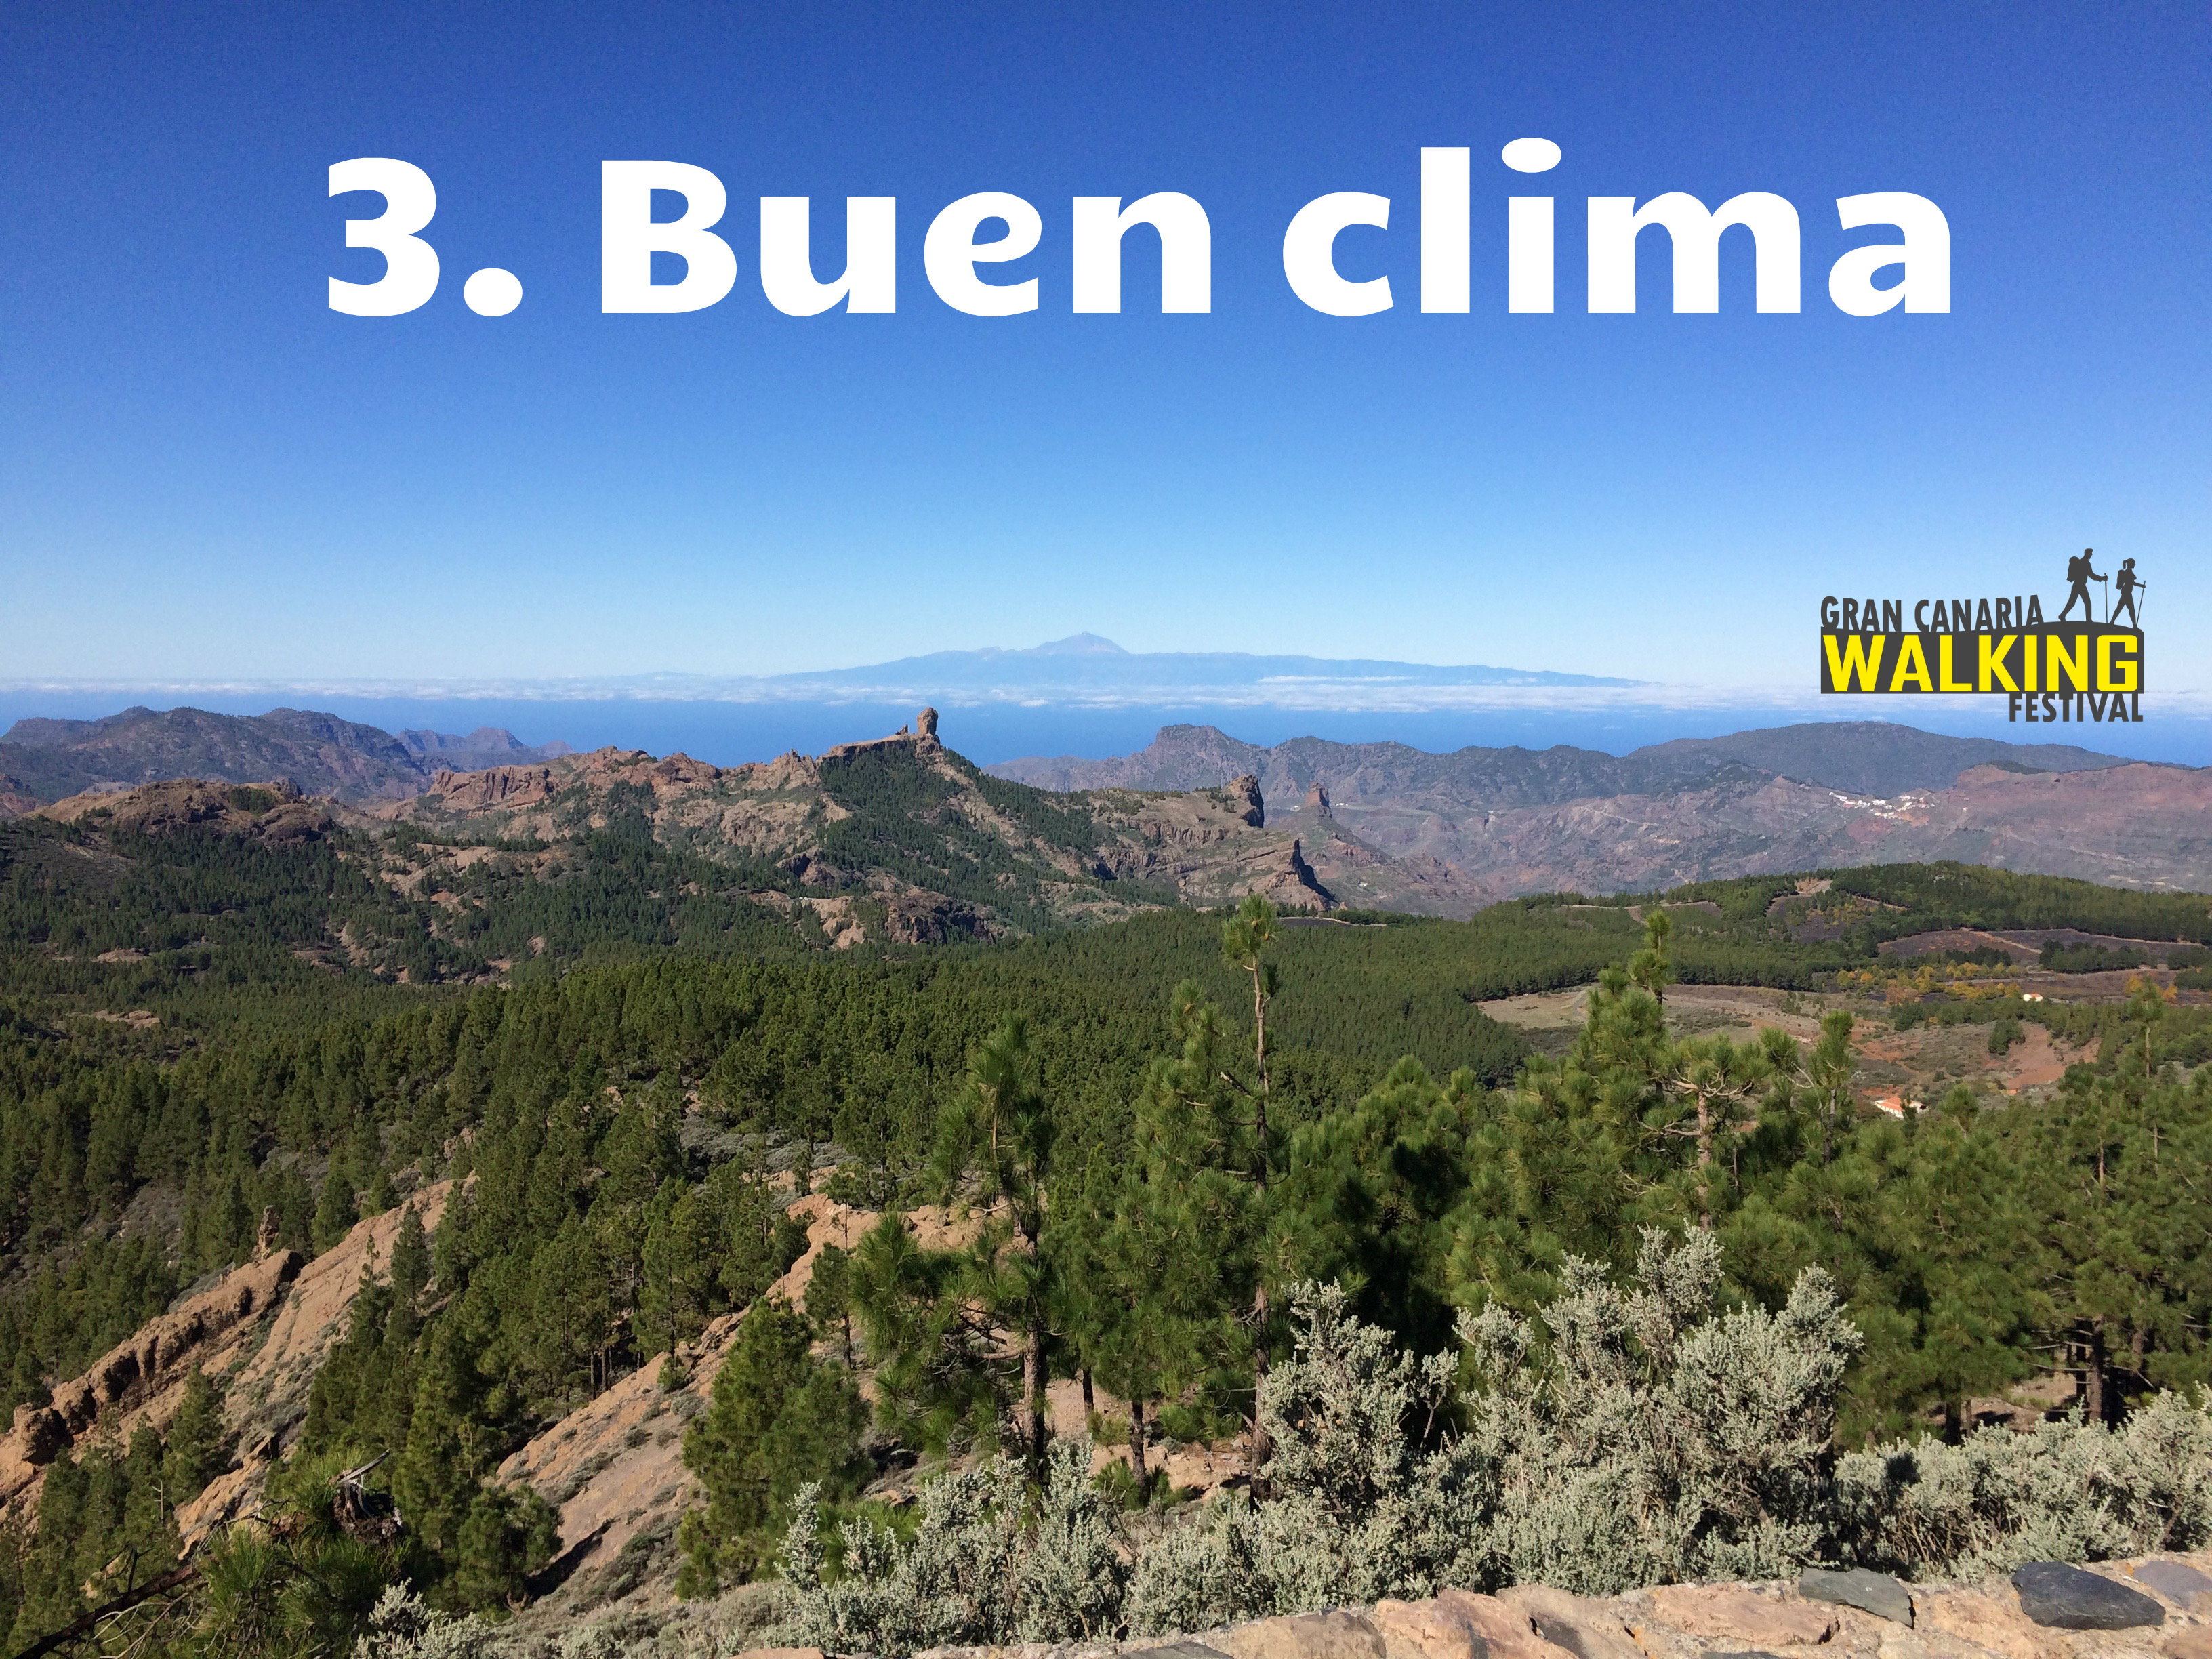 3.buenclima